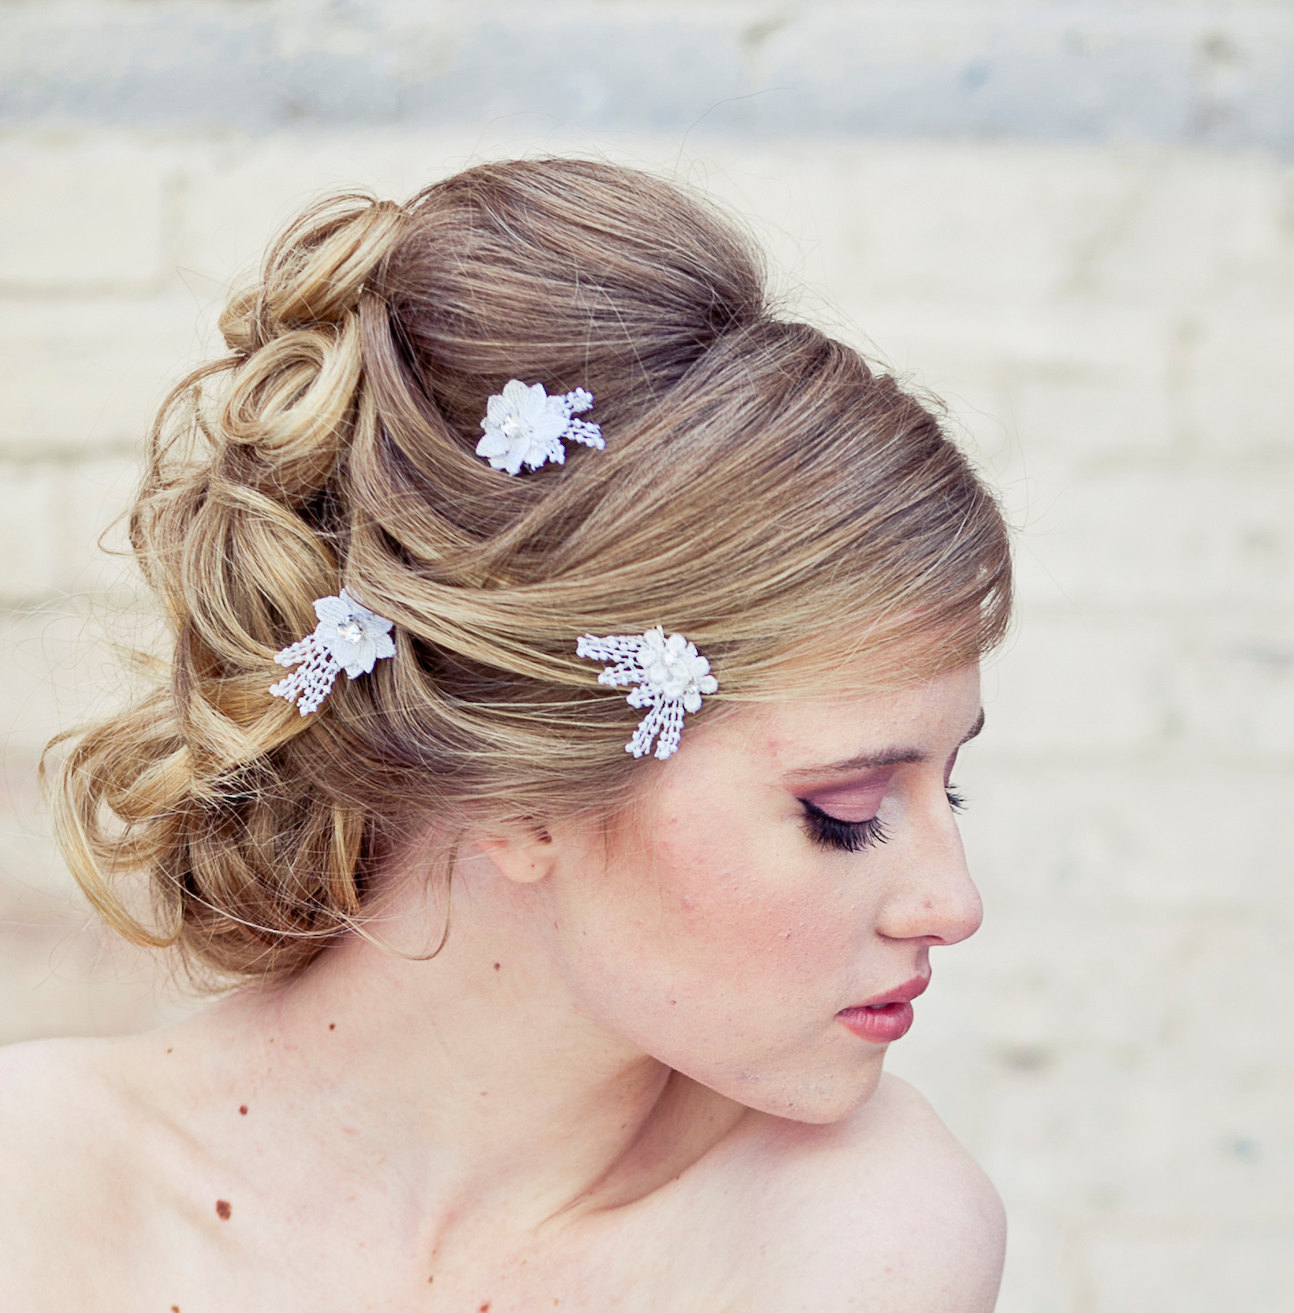 Lace Bobby Pin Wedding Hair Accessories Lace Daisy Bobby Pin Set In